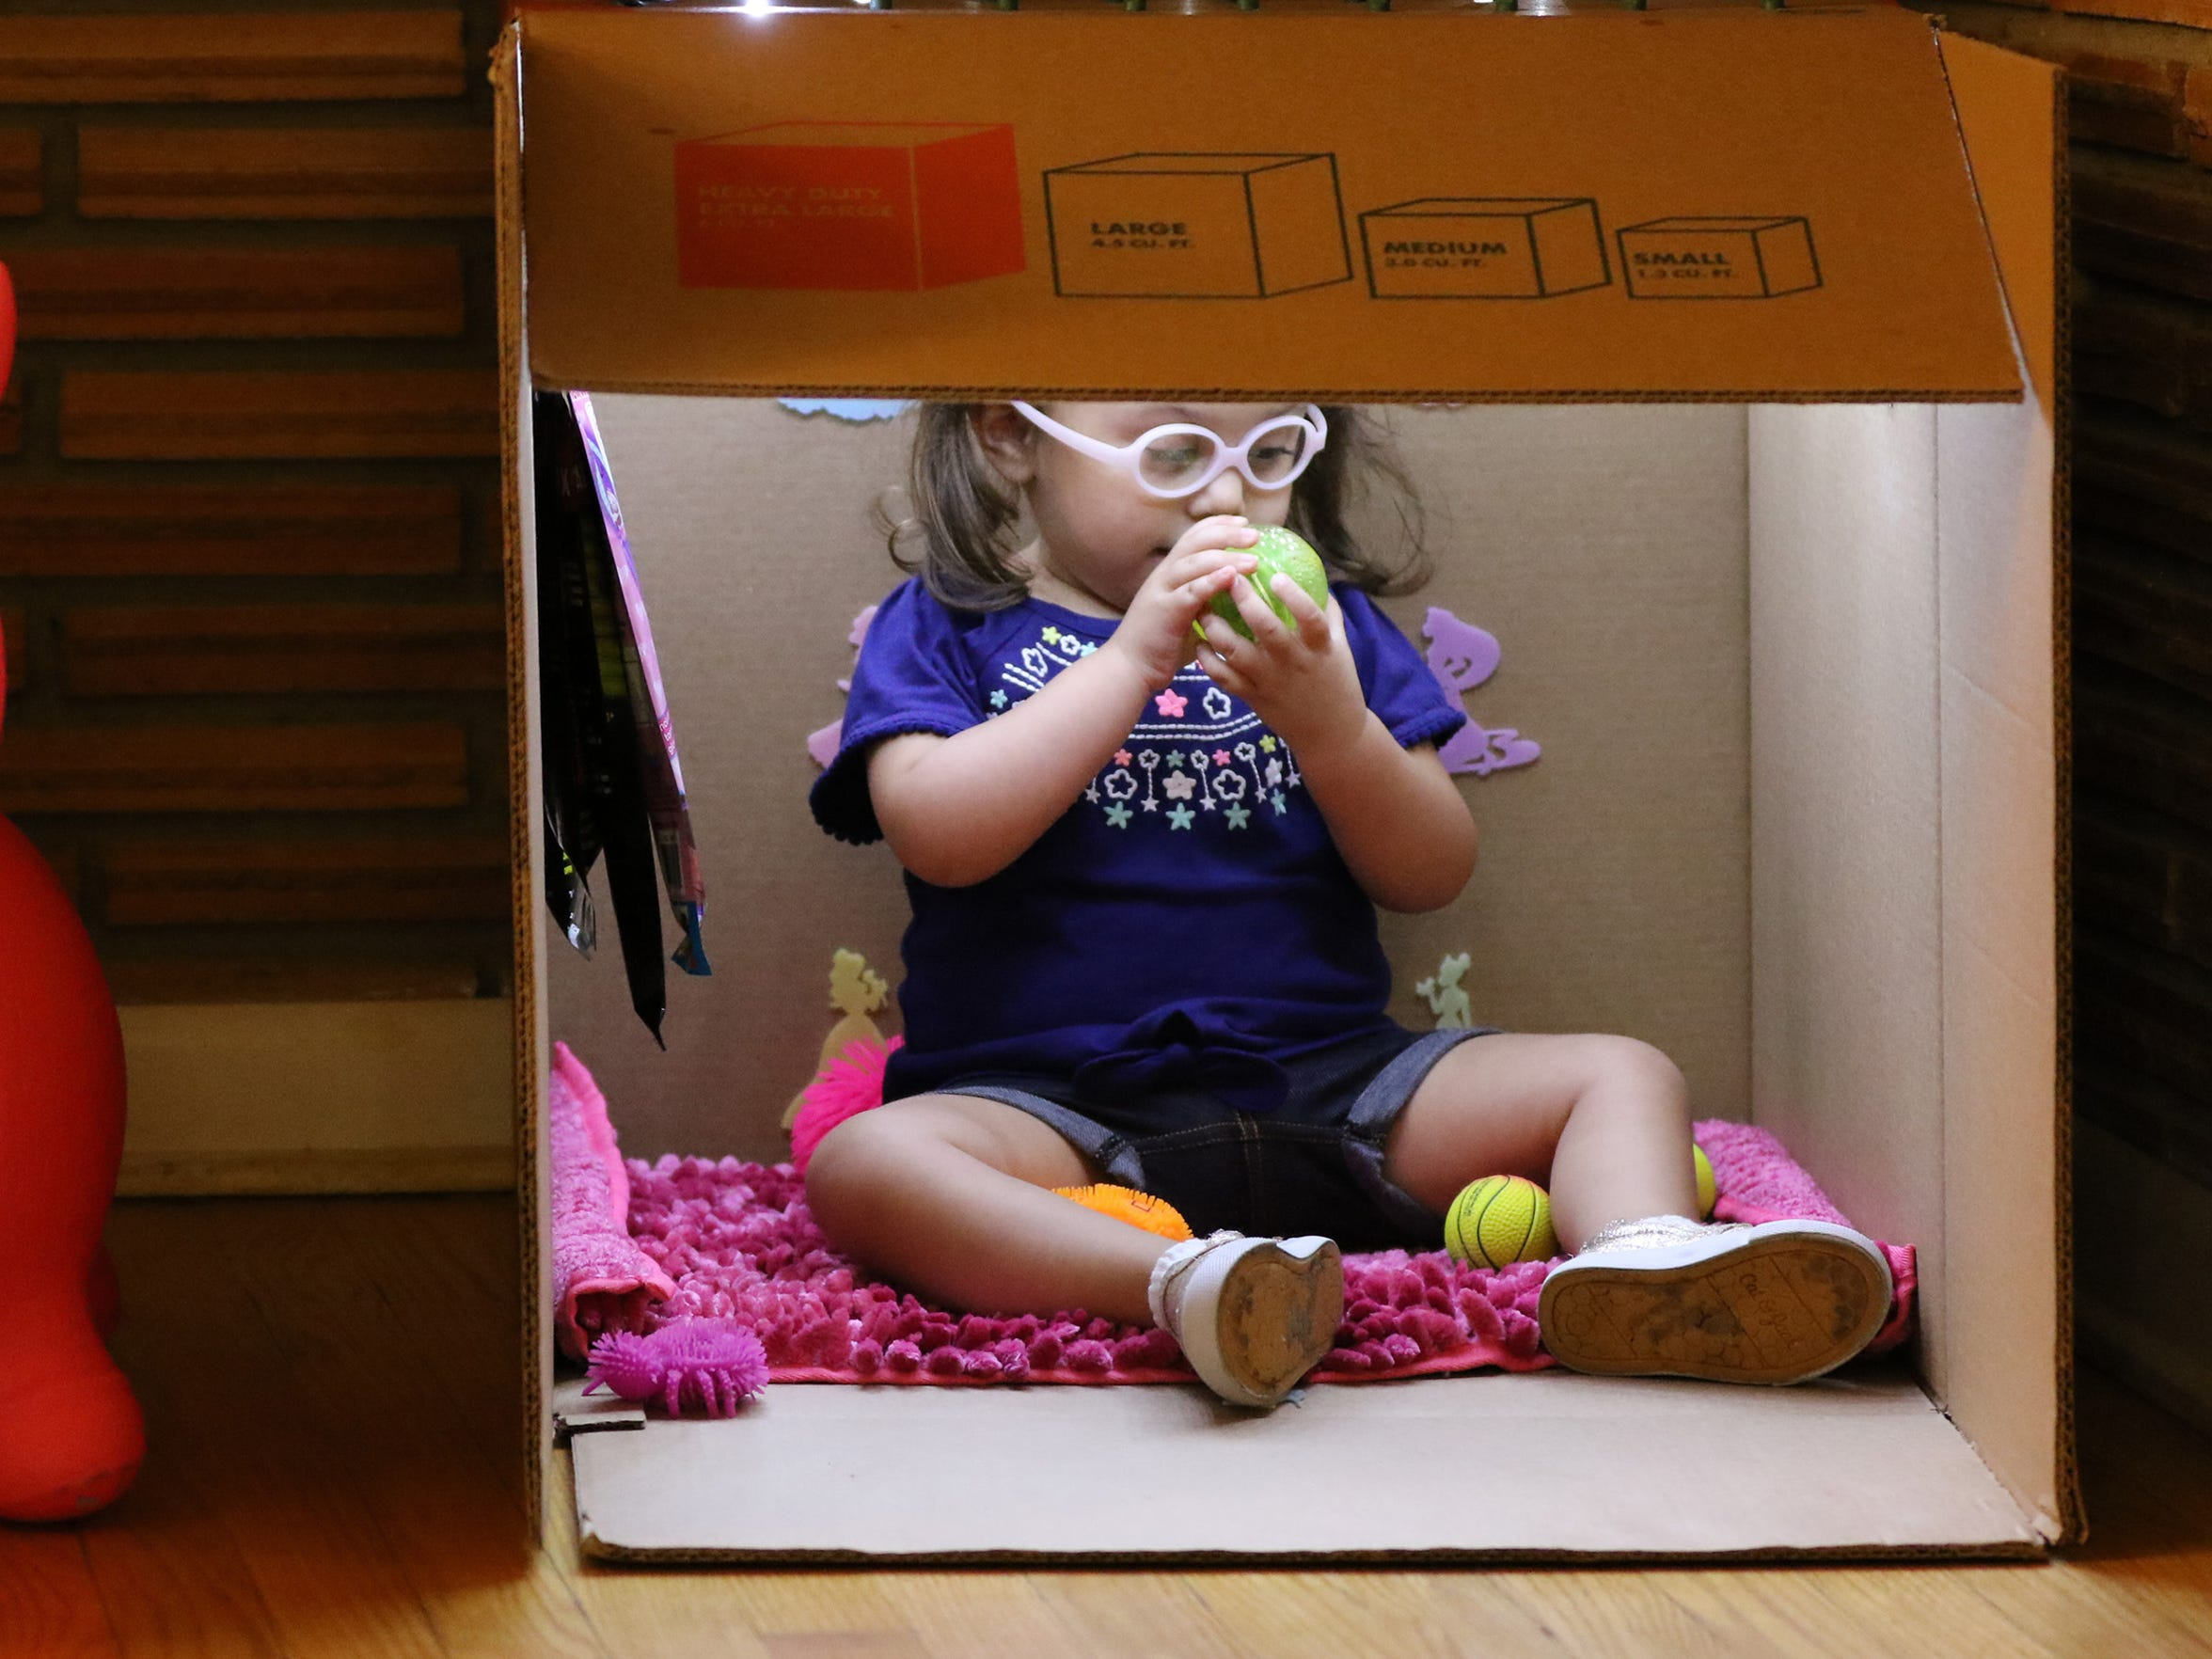 Eleanna Rivas, 3, sits in a lighted cardboard box fort where she likes to hide and be discovered. Eleanna's optic nerves never fully developed; the condition has resulted in limited vision and an off-center focal point.